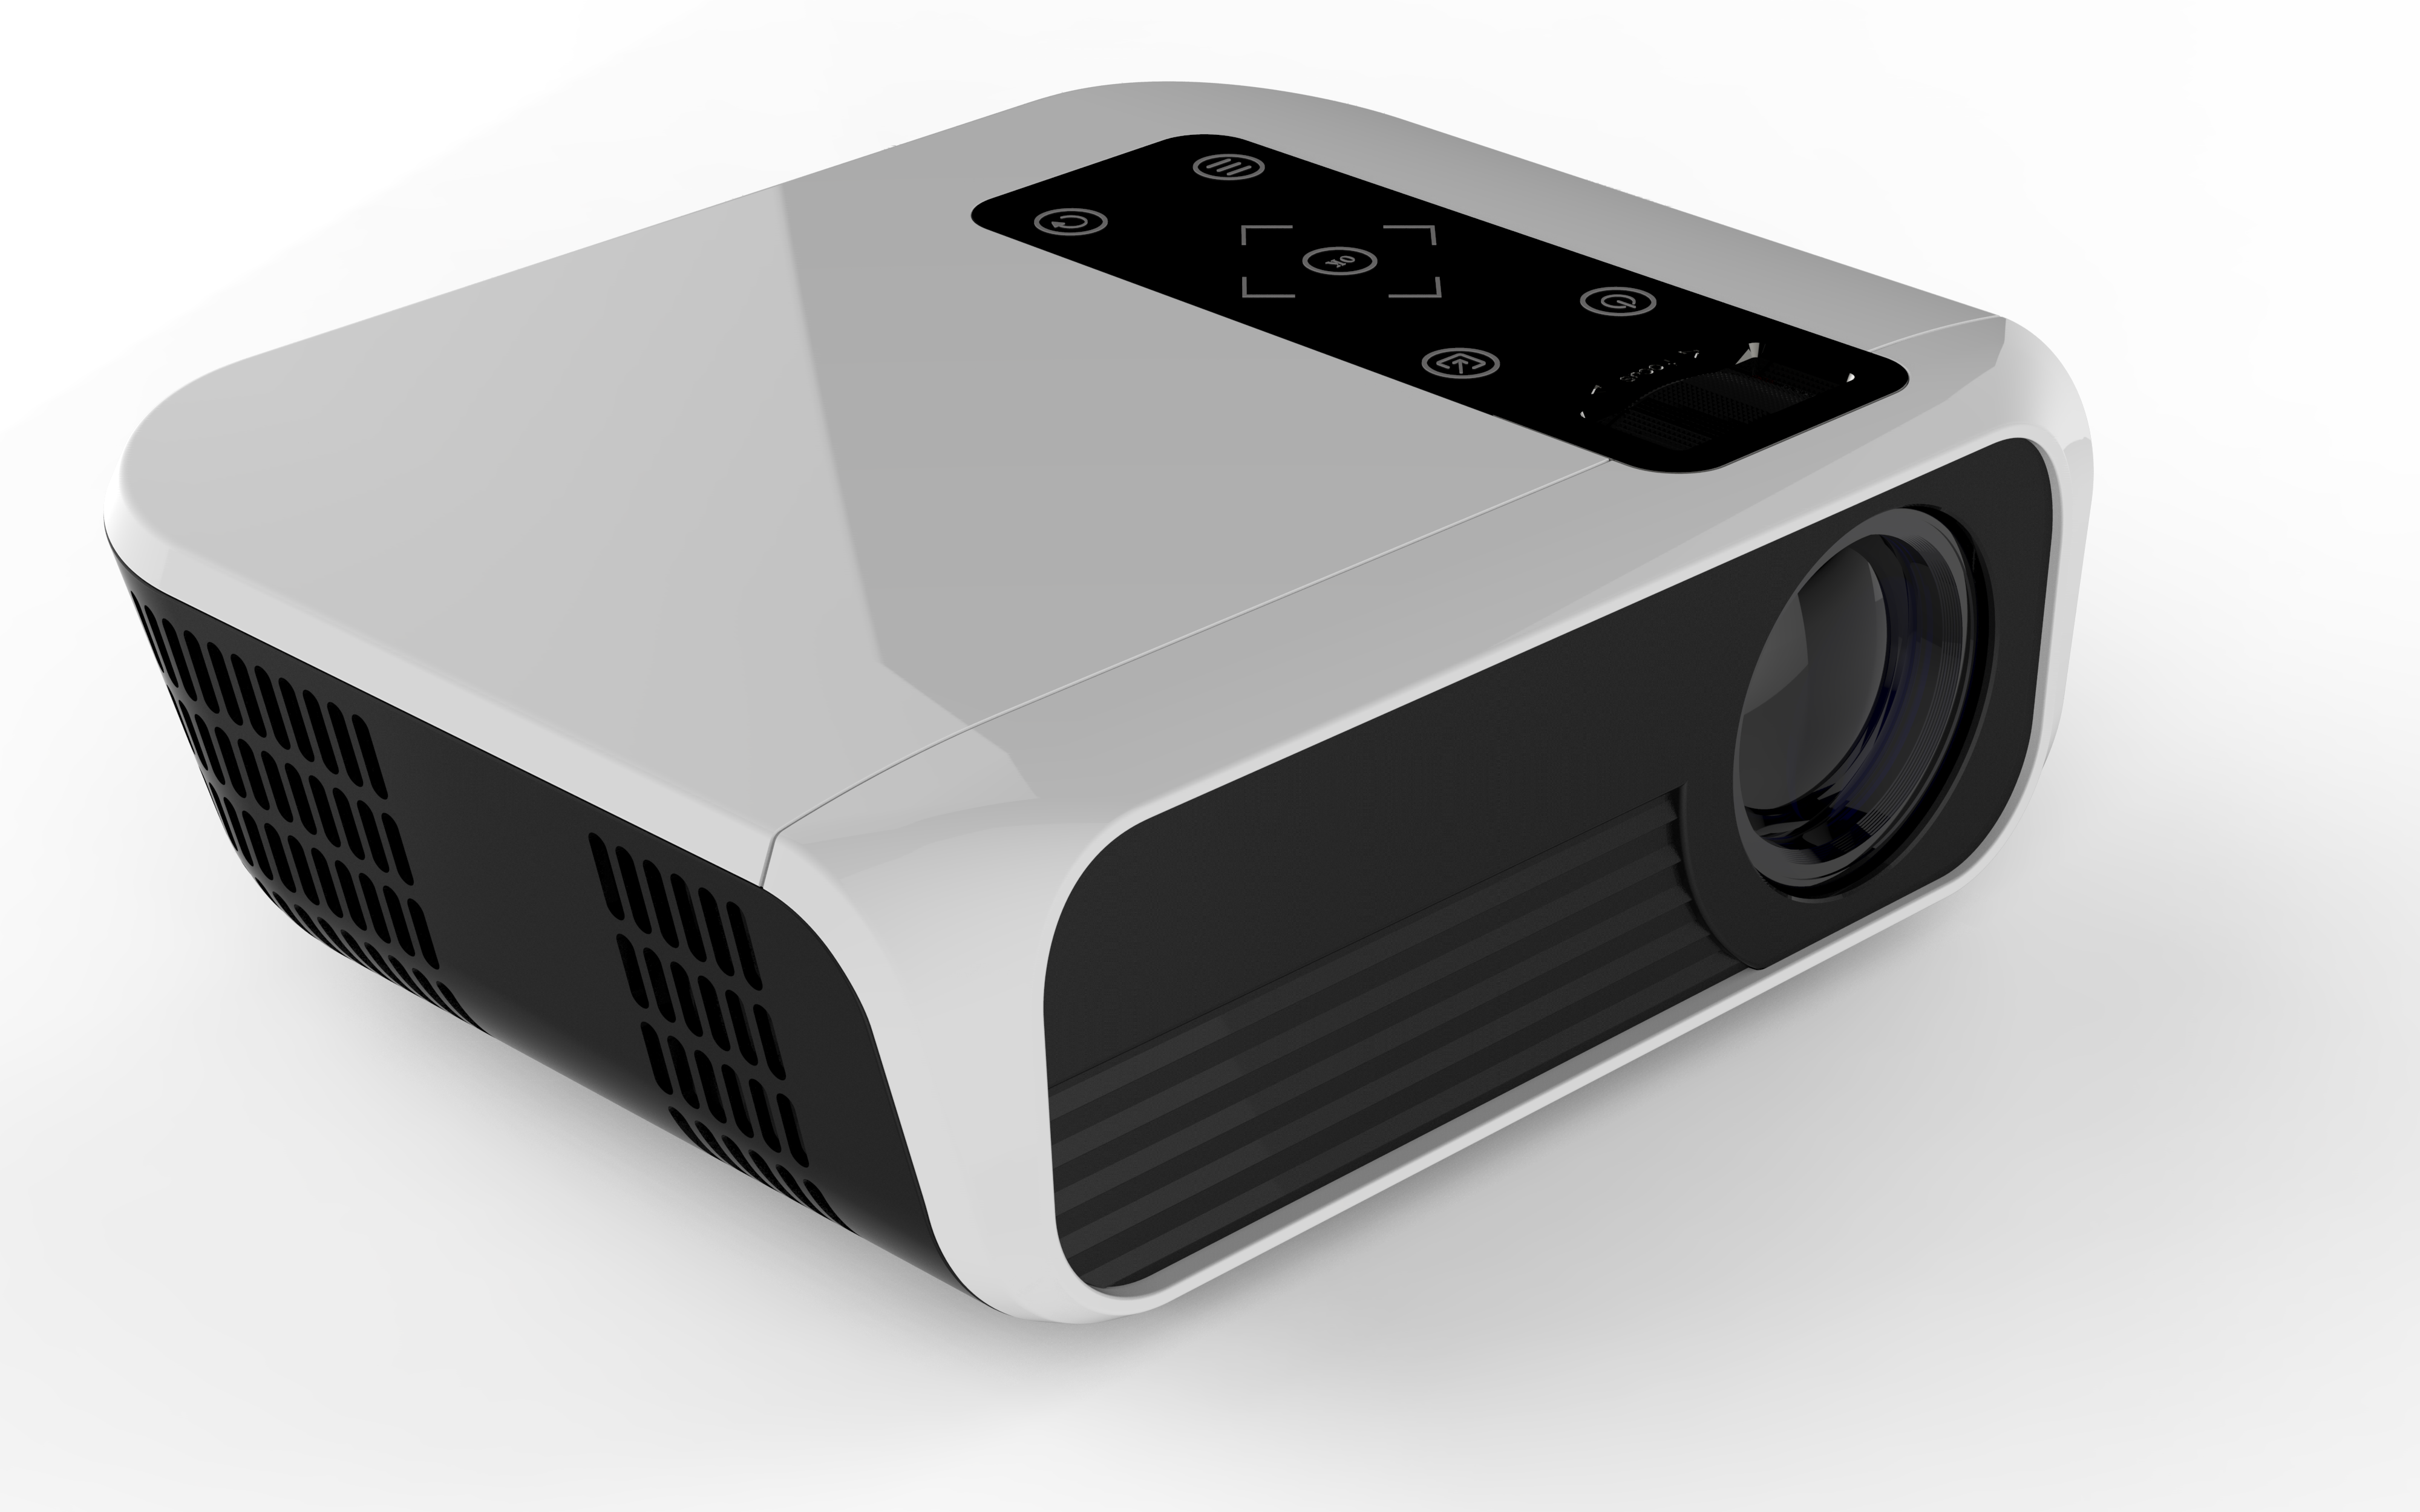 T8 Home HD 1080P smart projector mini portable 3D mobile projector